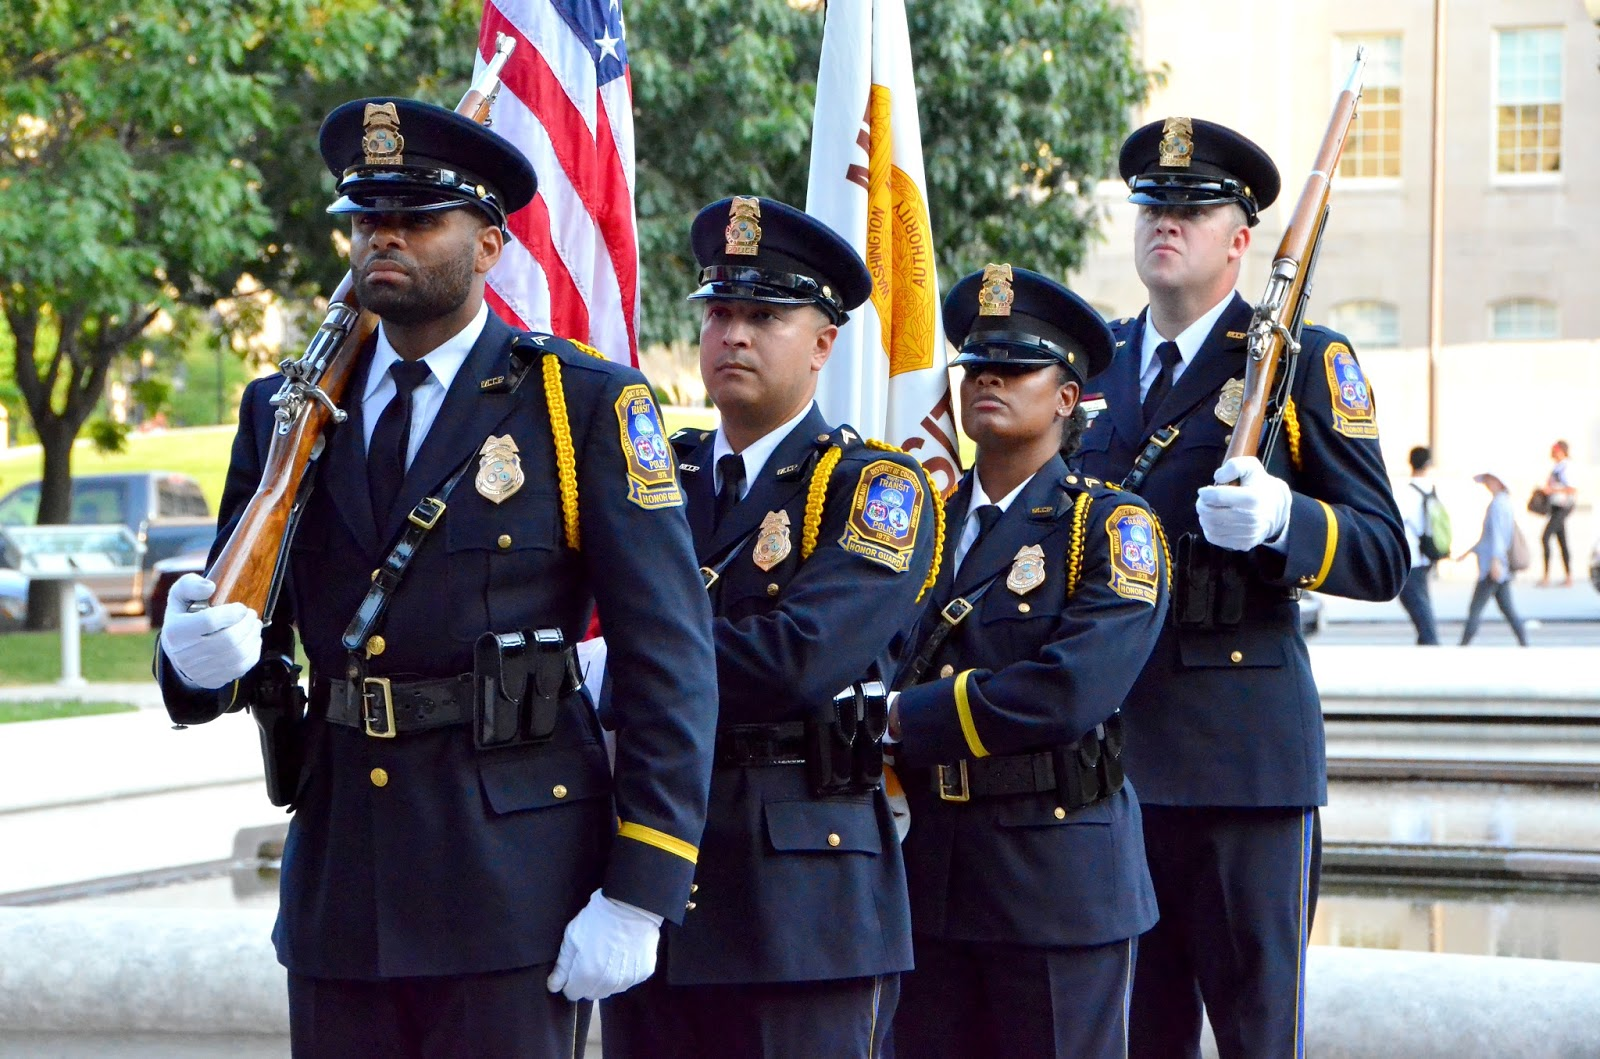 National Law Enforcement Officers Memorial Fund: July 2015